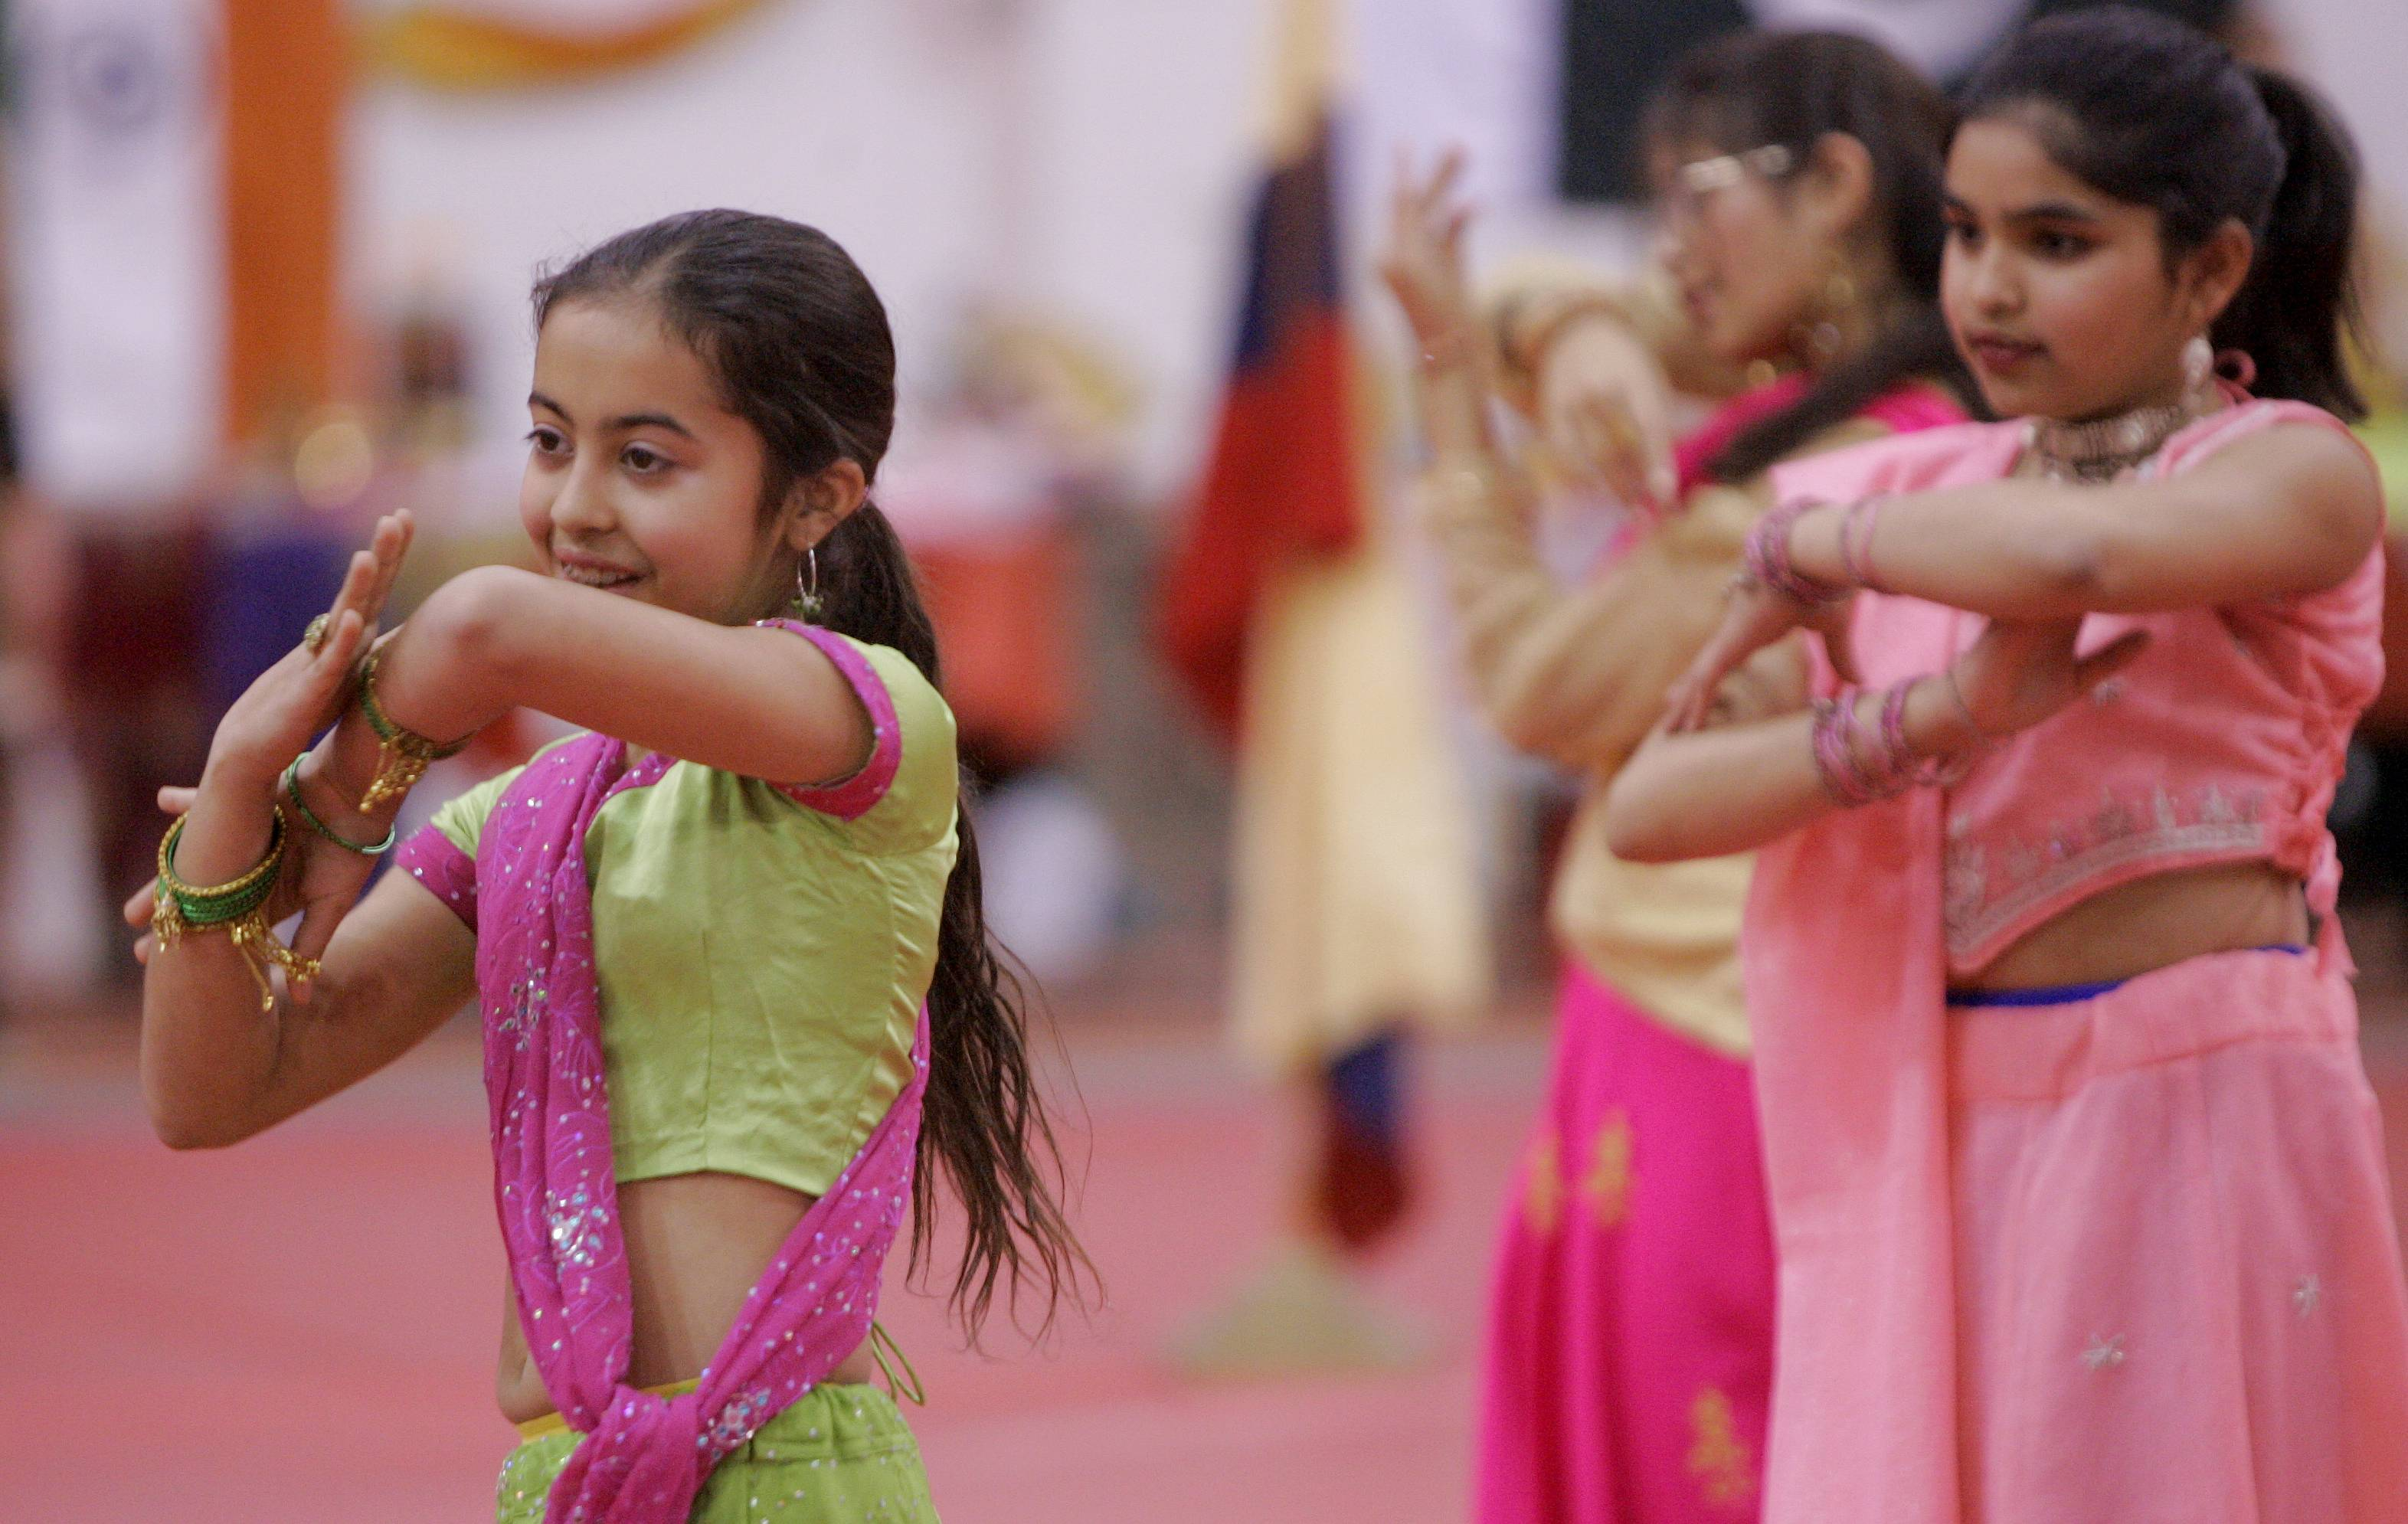 Dances from different cultures are performed at North Central College's International Festival.